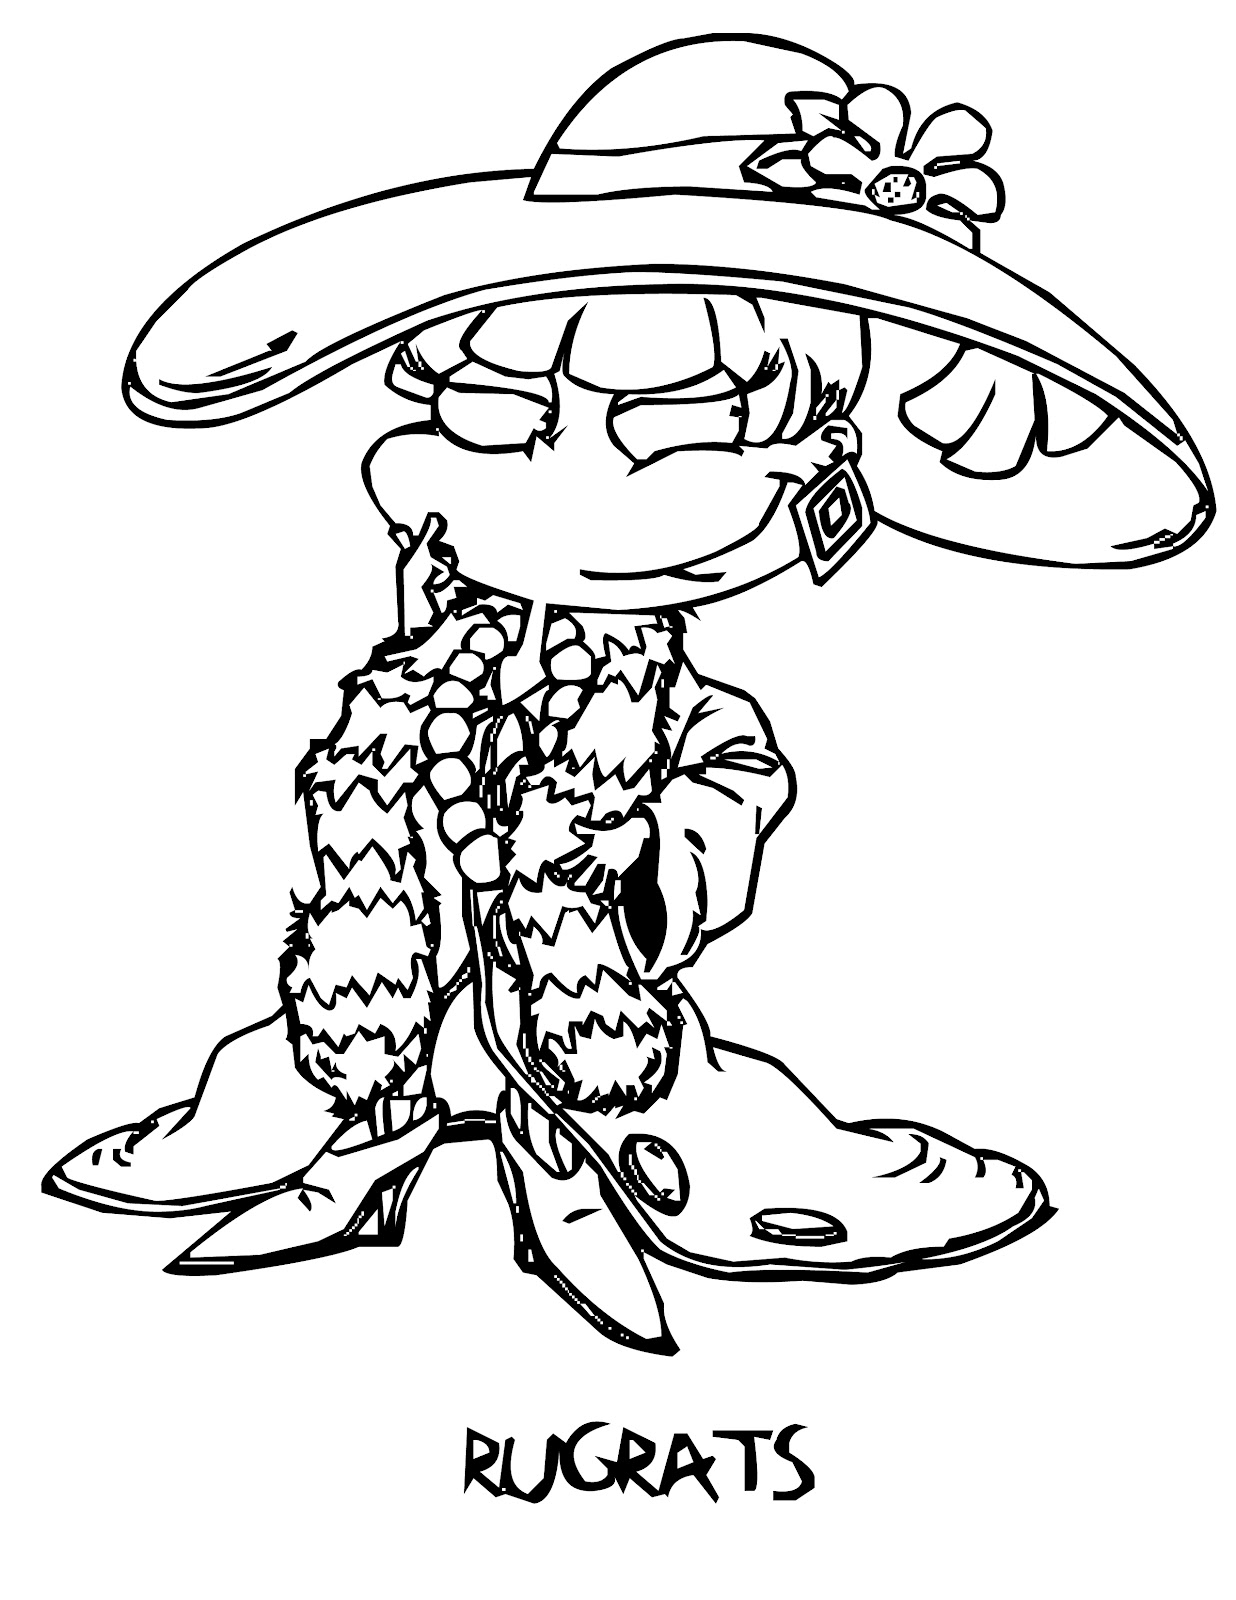 angelica rugrats coloring pages rugrats angelica coloring pages at getcoloringscom free angelica rugrats pages coloring